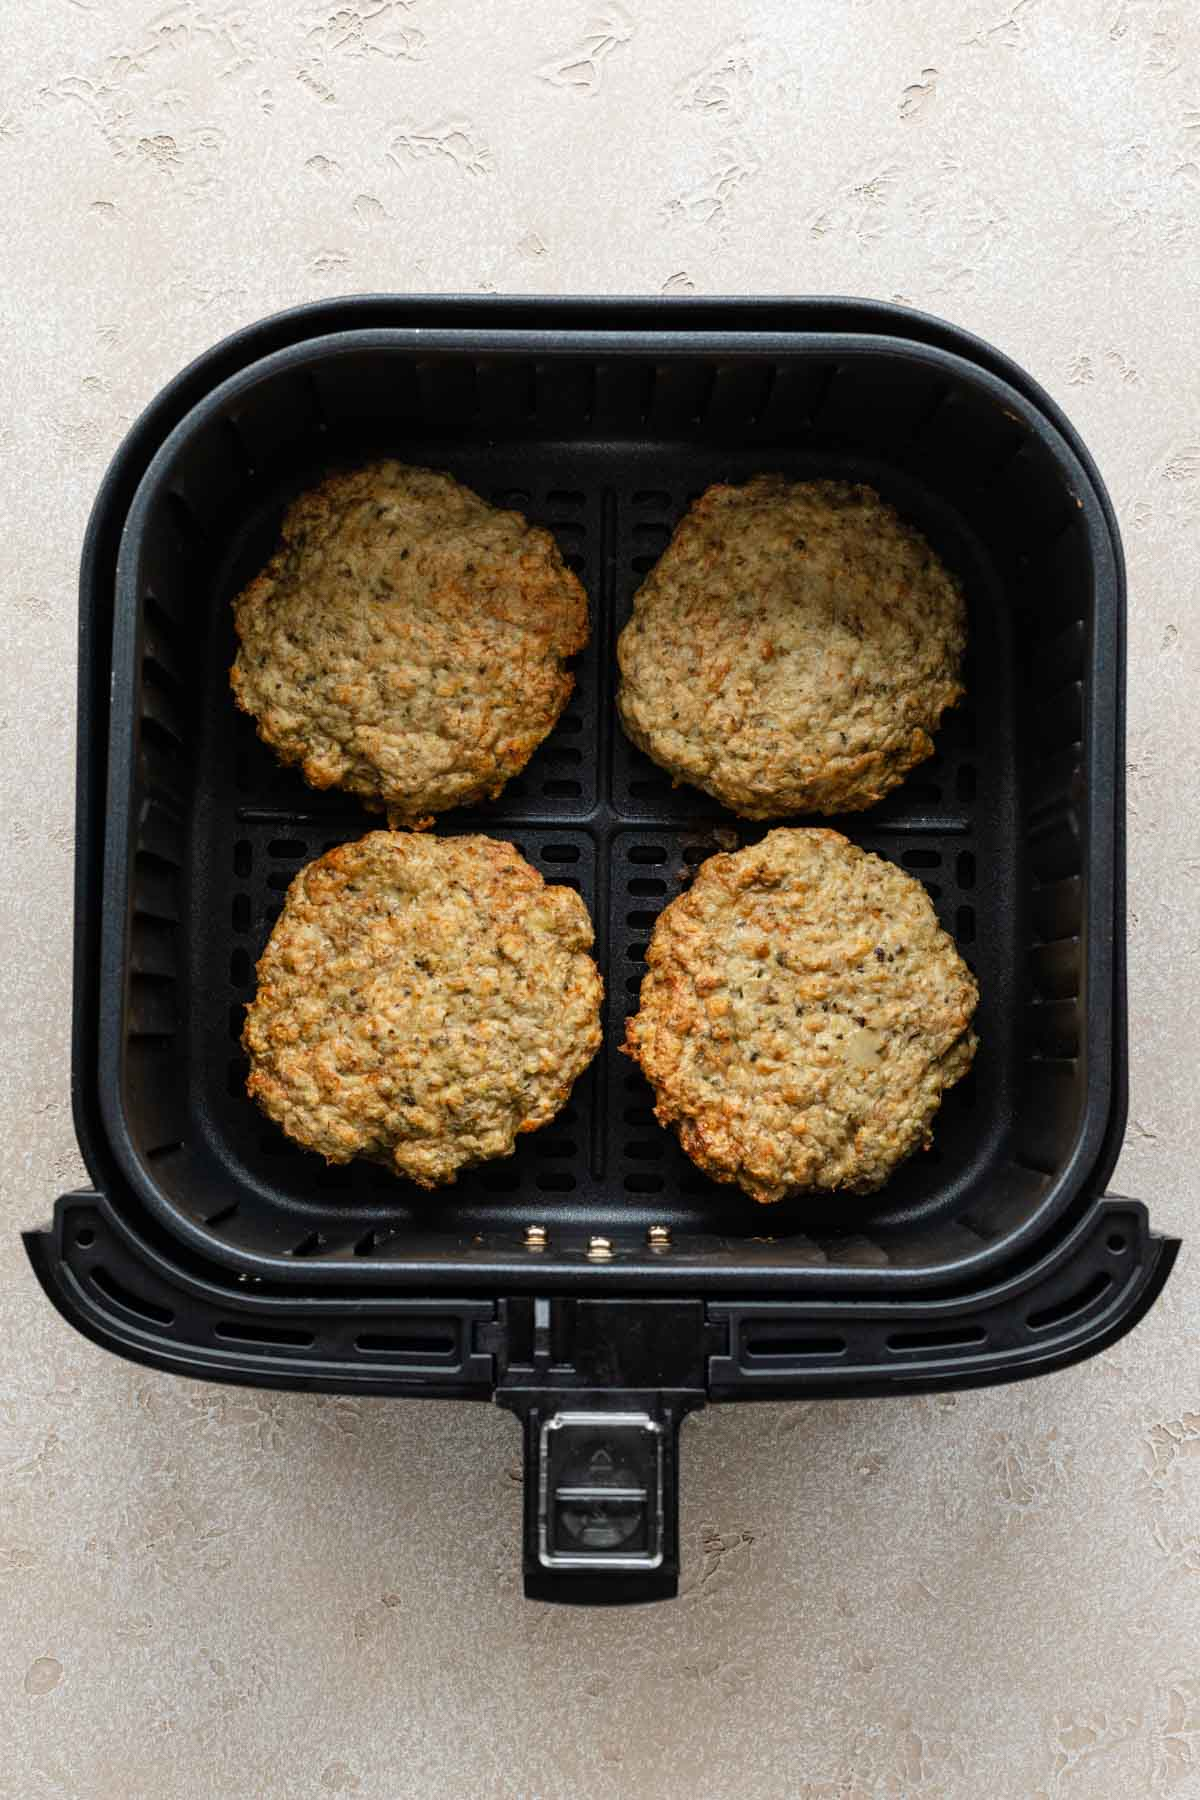 Four turkey burgers cooked in an air fryer basket.